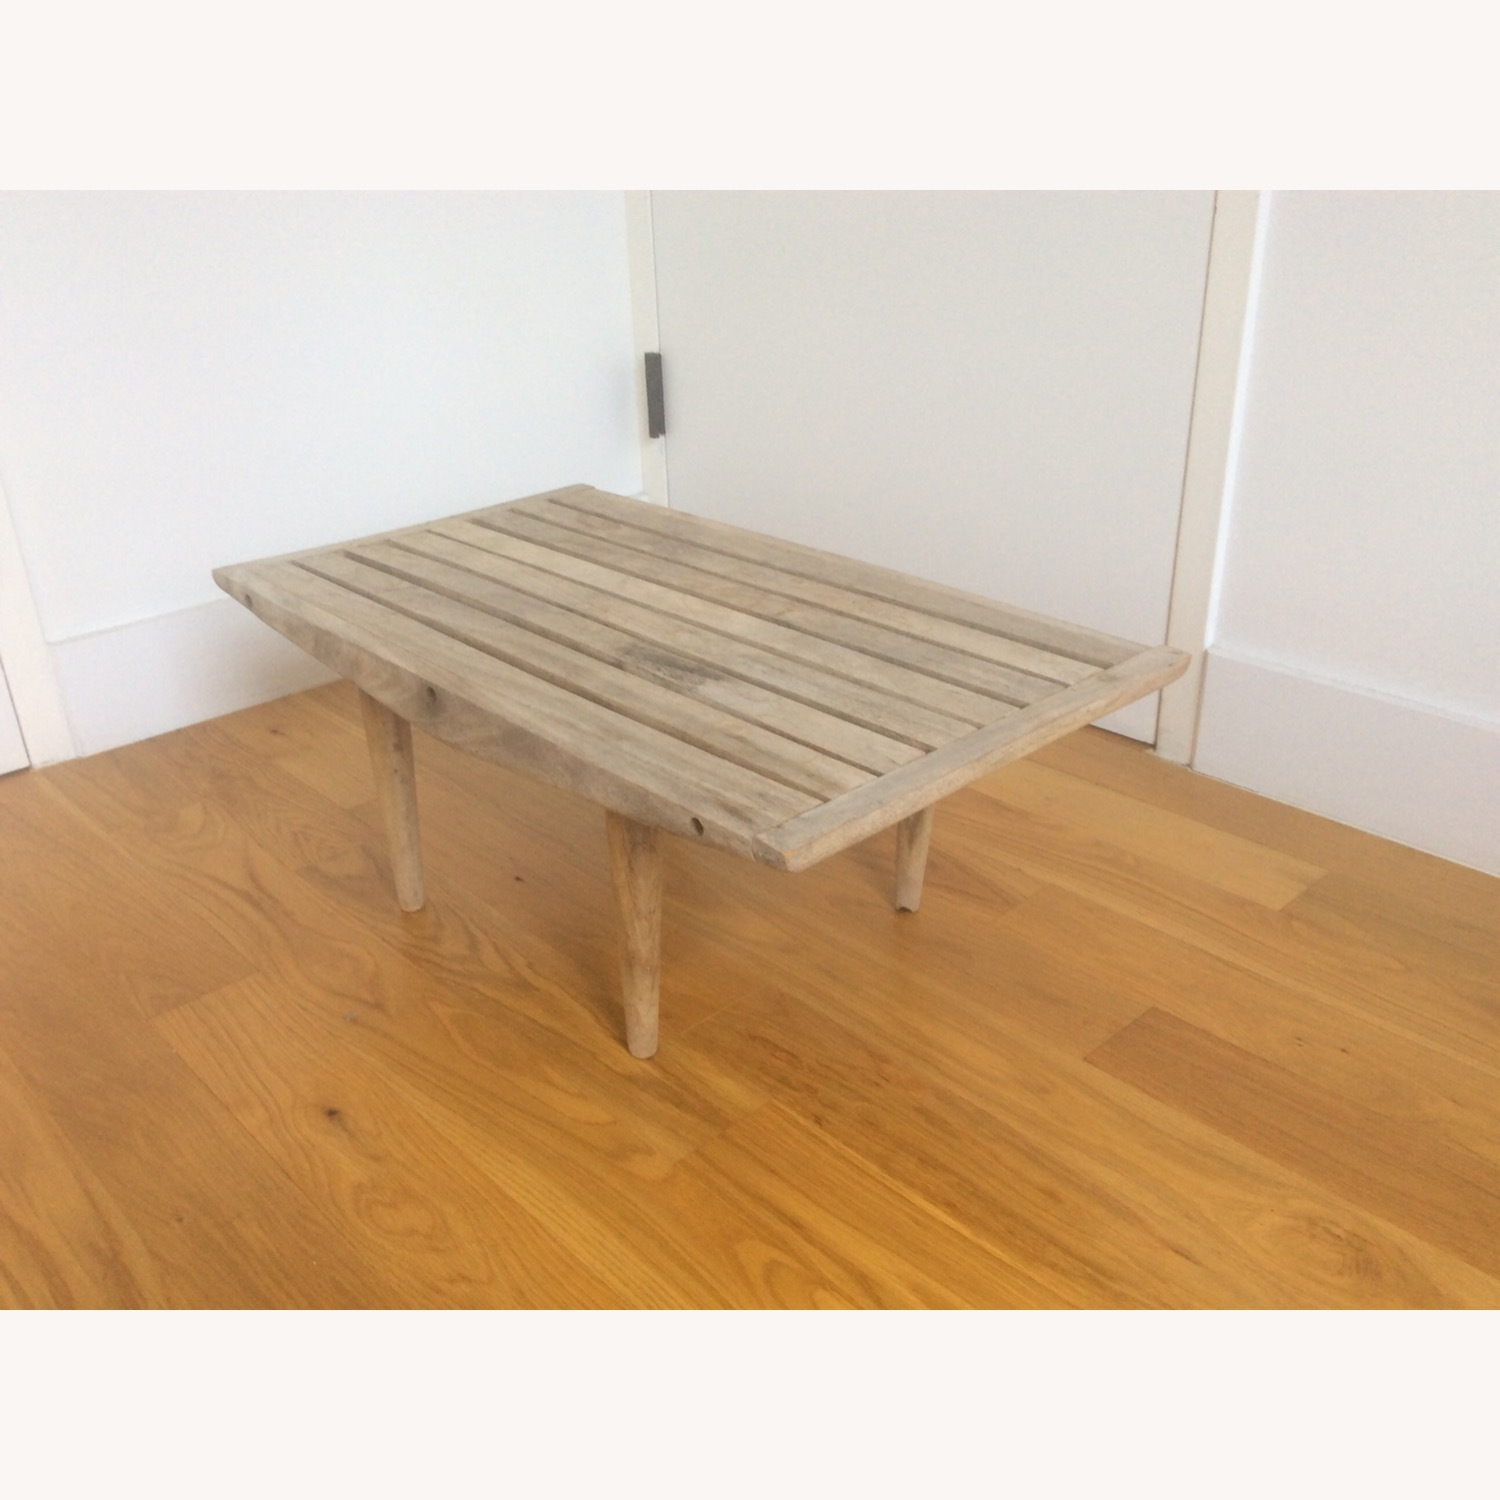 Vintage Wooden Coffee Table - image-2